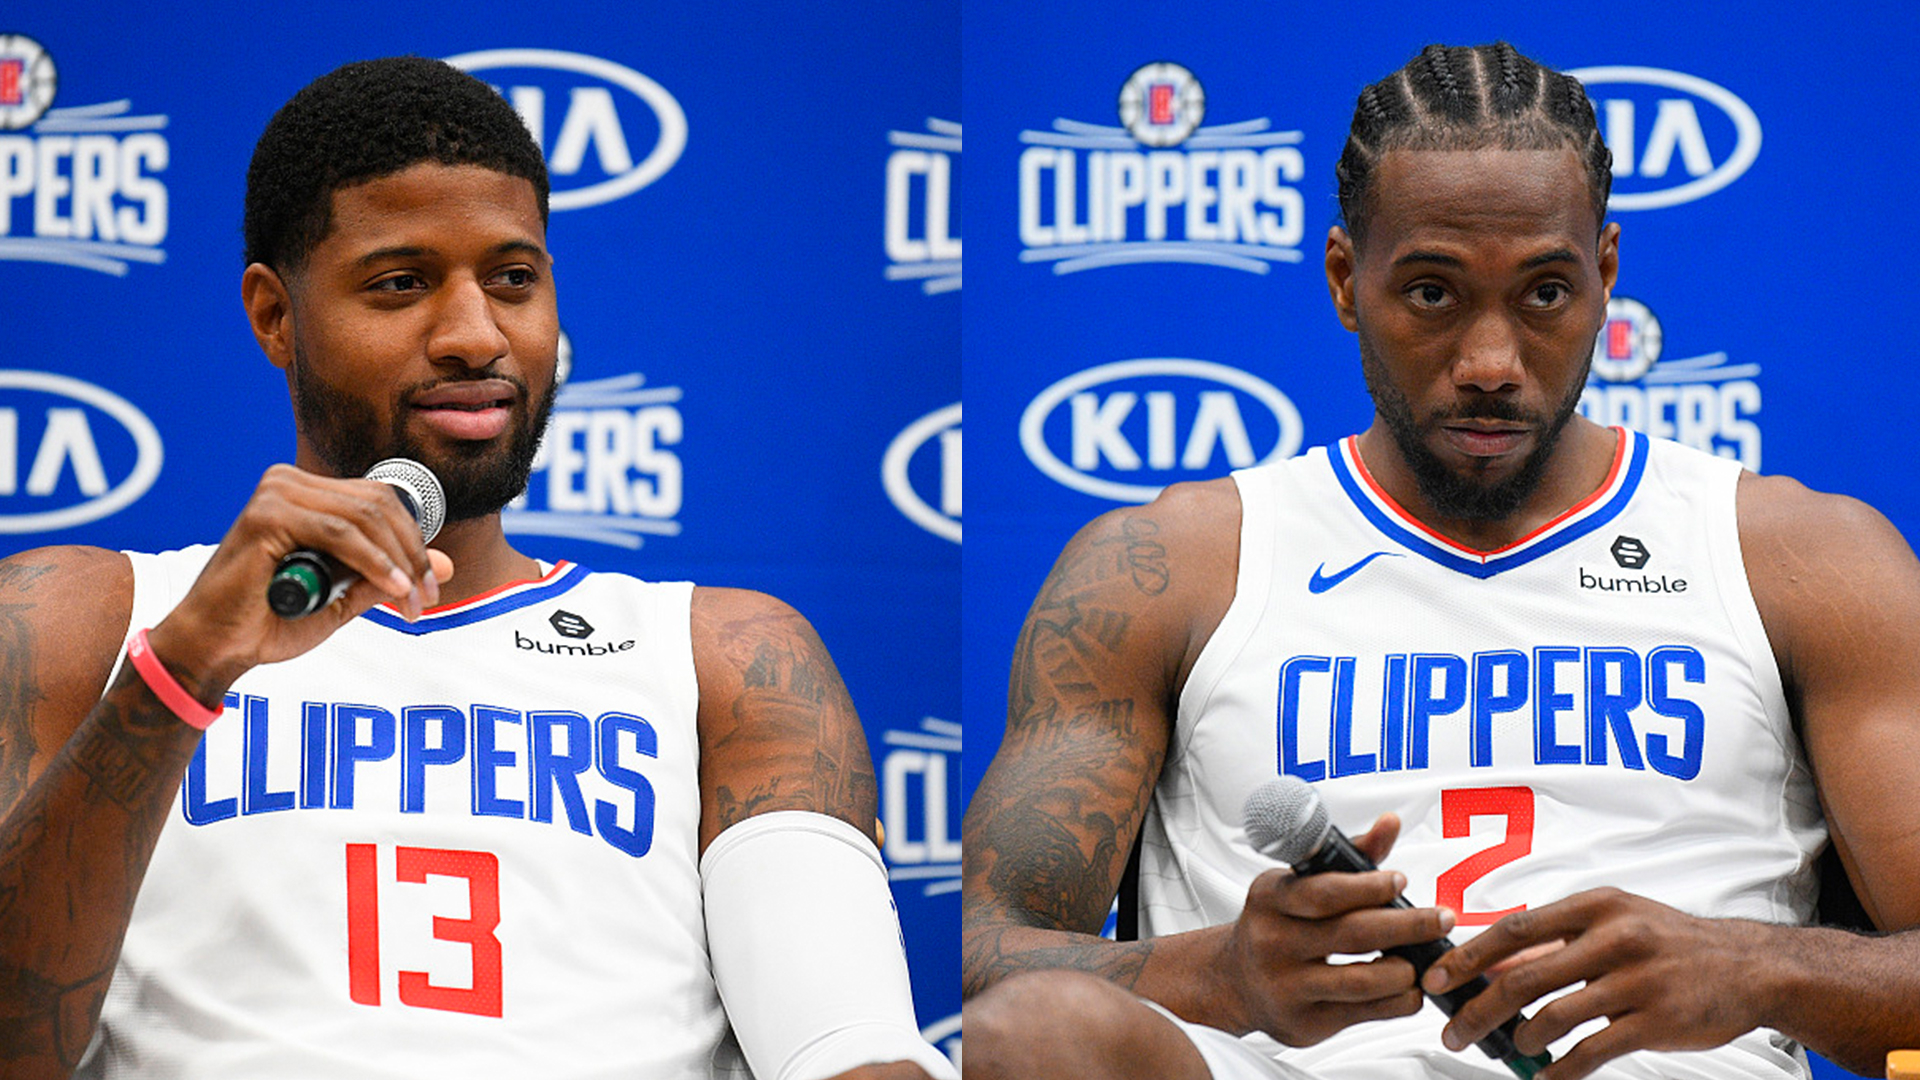 Paul George Wallpaper Hd - Kawhi Leonard Clippers Media Day , HD Wallpaper & Backgrounds